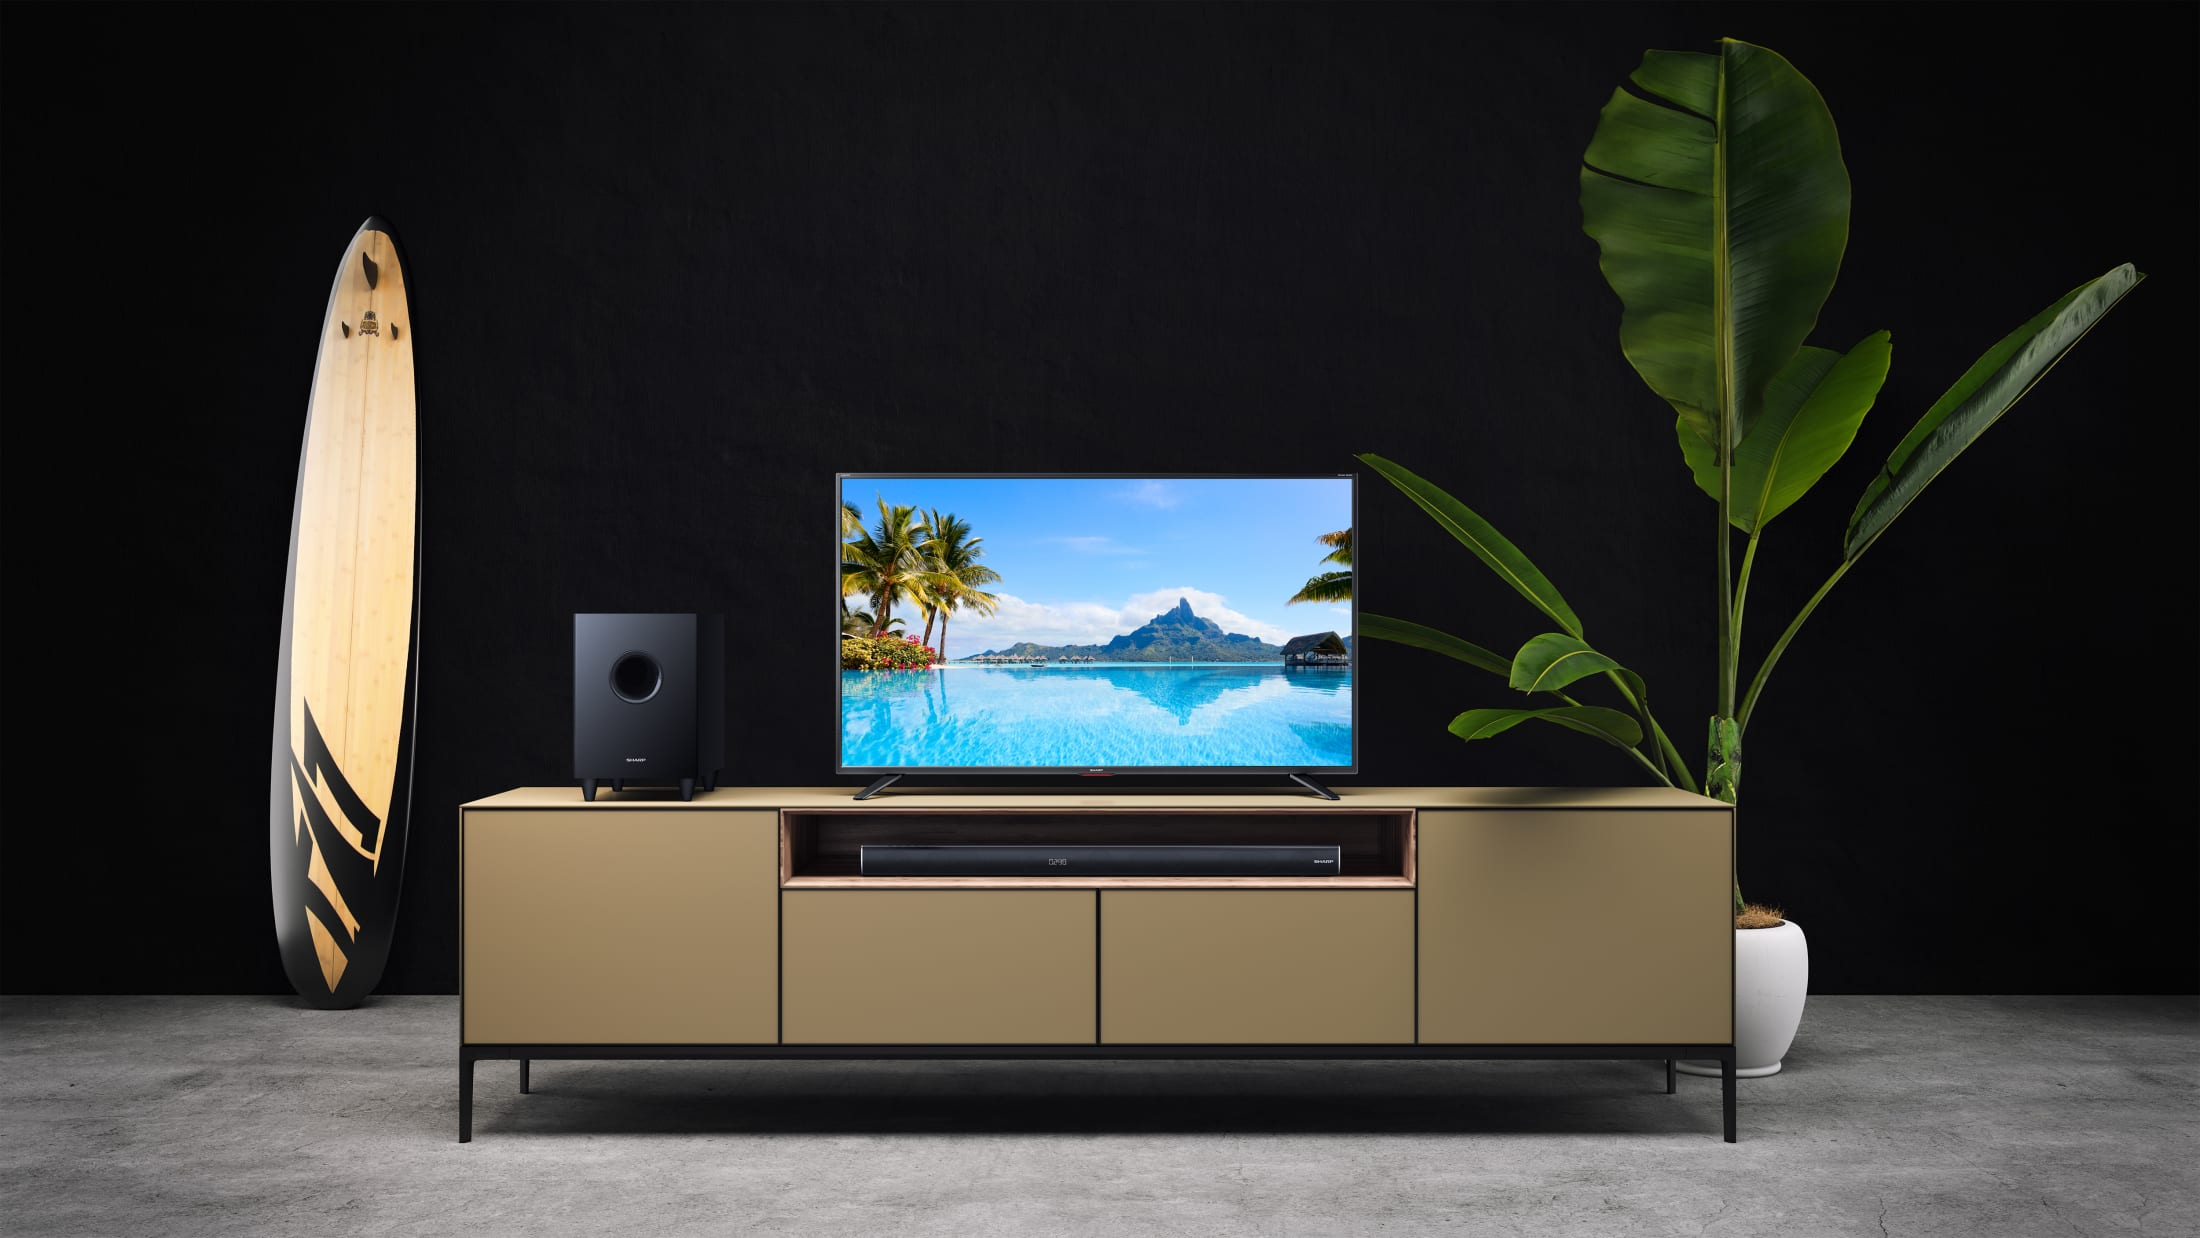 3.1 Home Theater with wireless Subwoofer, 600 W, Dolby Digital and Bluetooth wireless music streaming. Suitable for 43 inch TV and above.